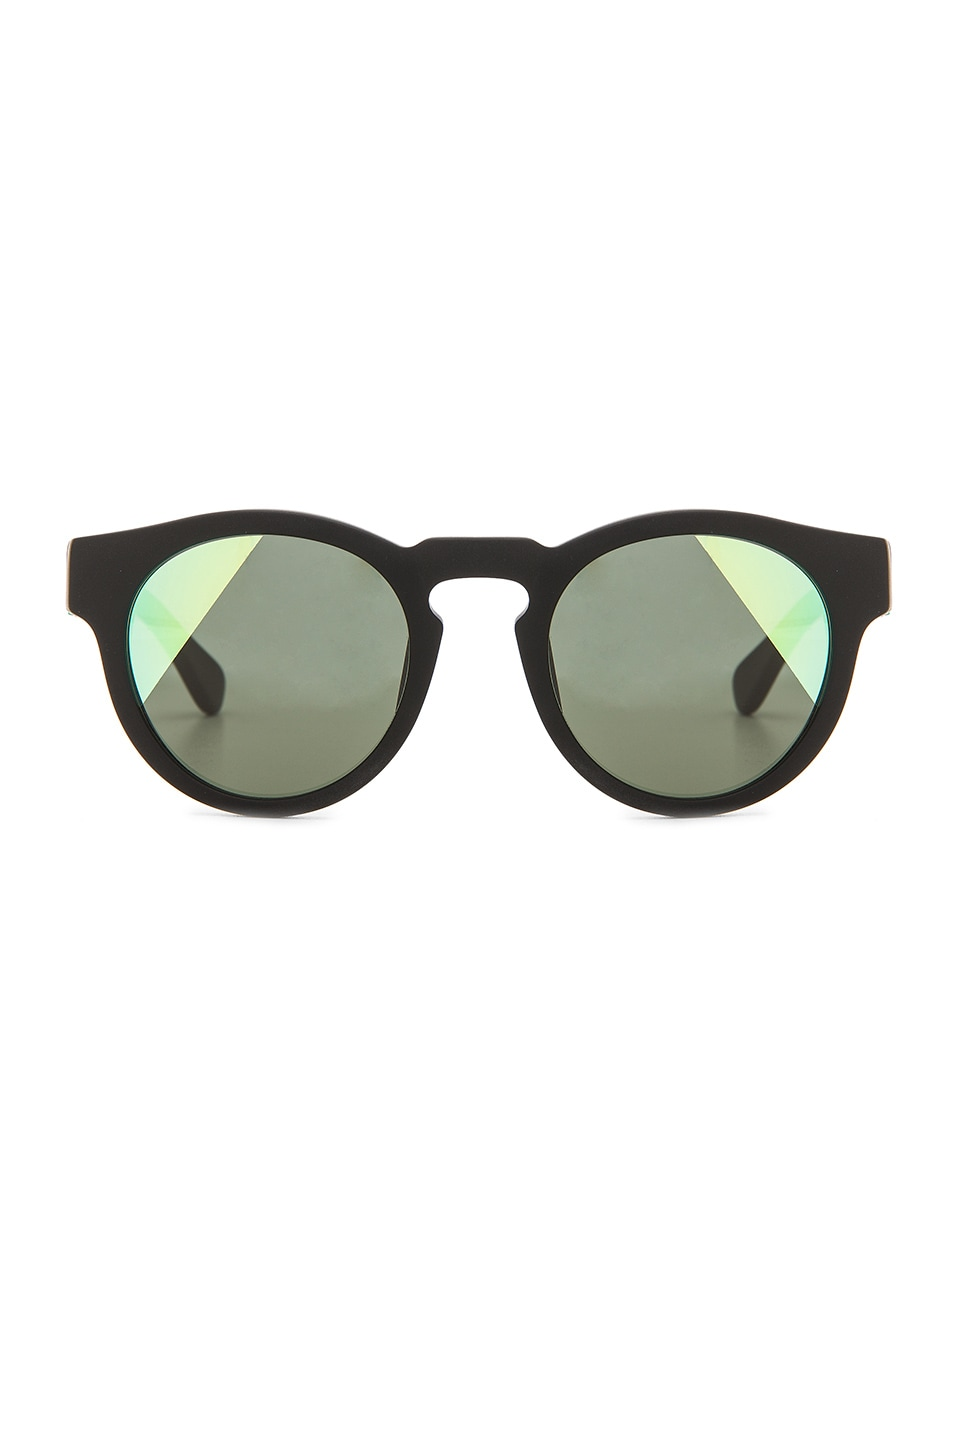 Voyager Sunglasses by WESTWARD LEANING